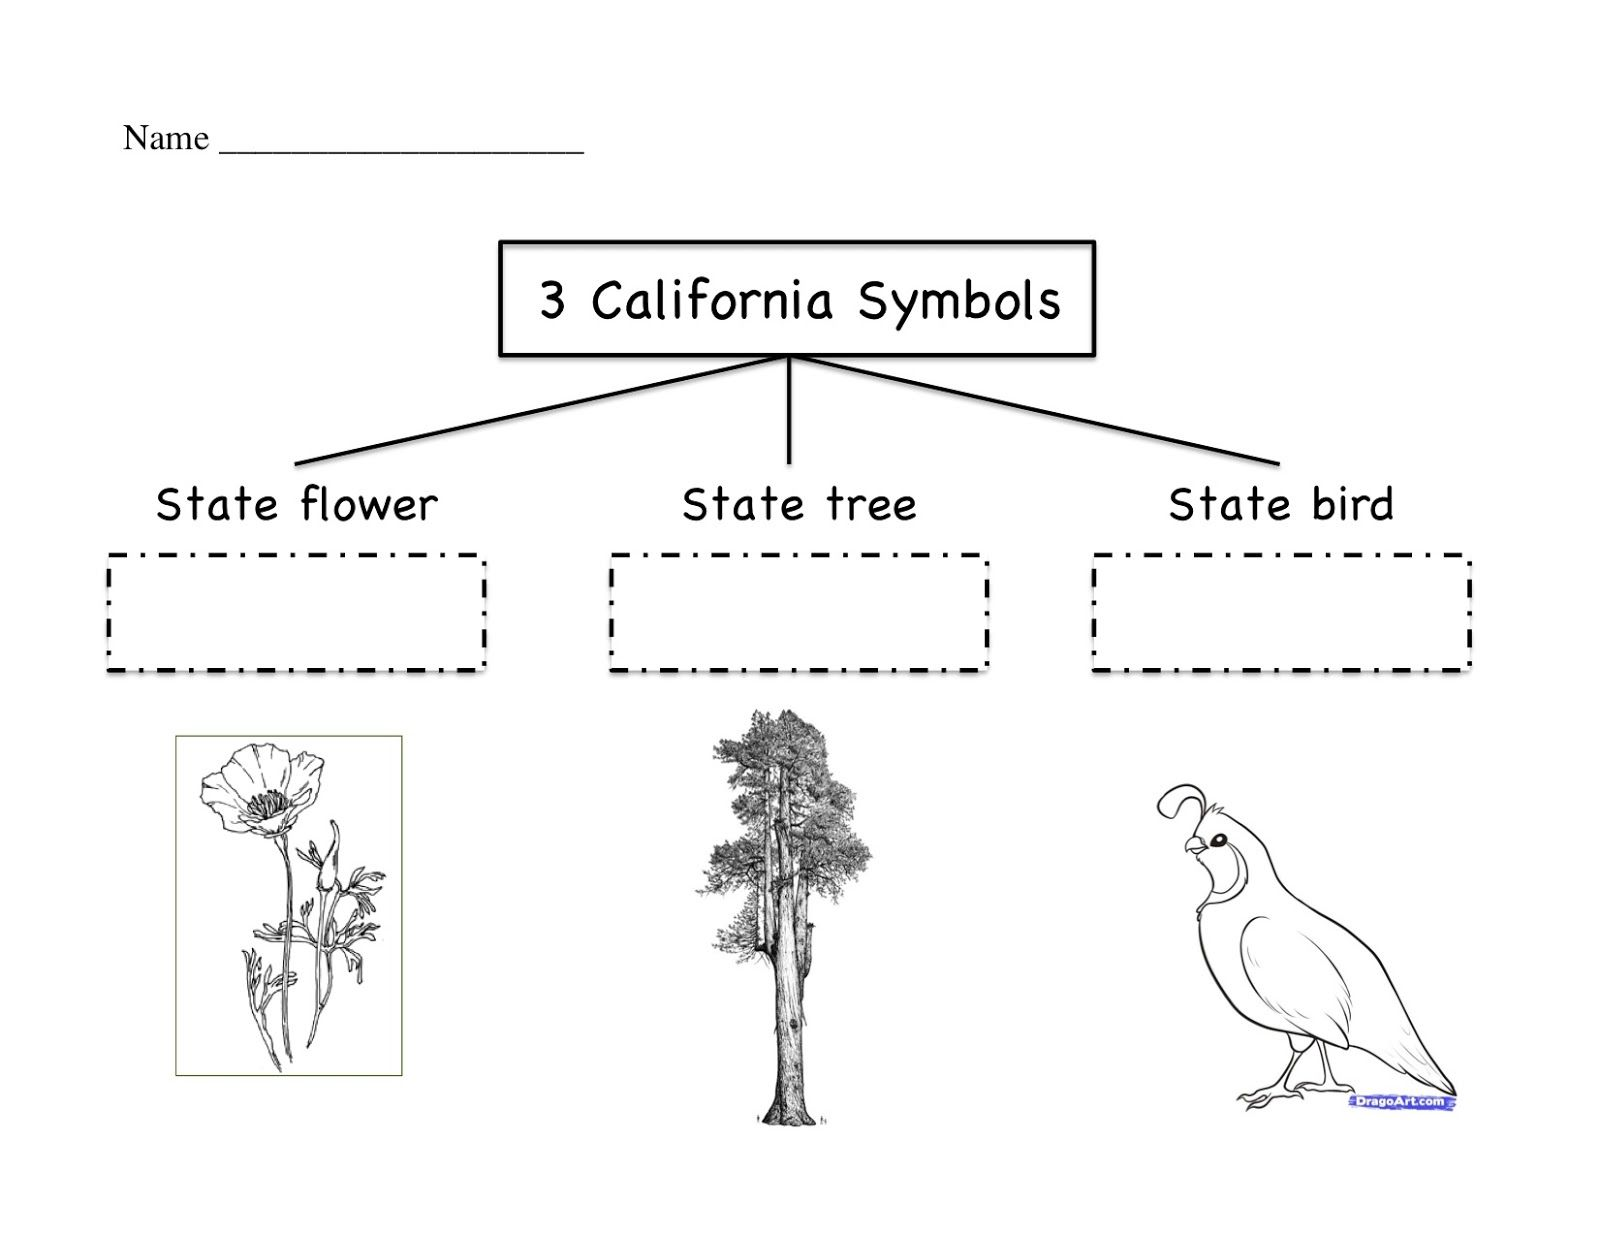 worksheet Weather Map Symbols Worksheet california state symbols booklet pinterest the free worksheet labeling kinder learning garden blog